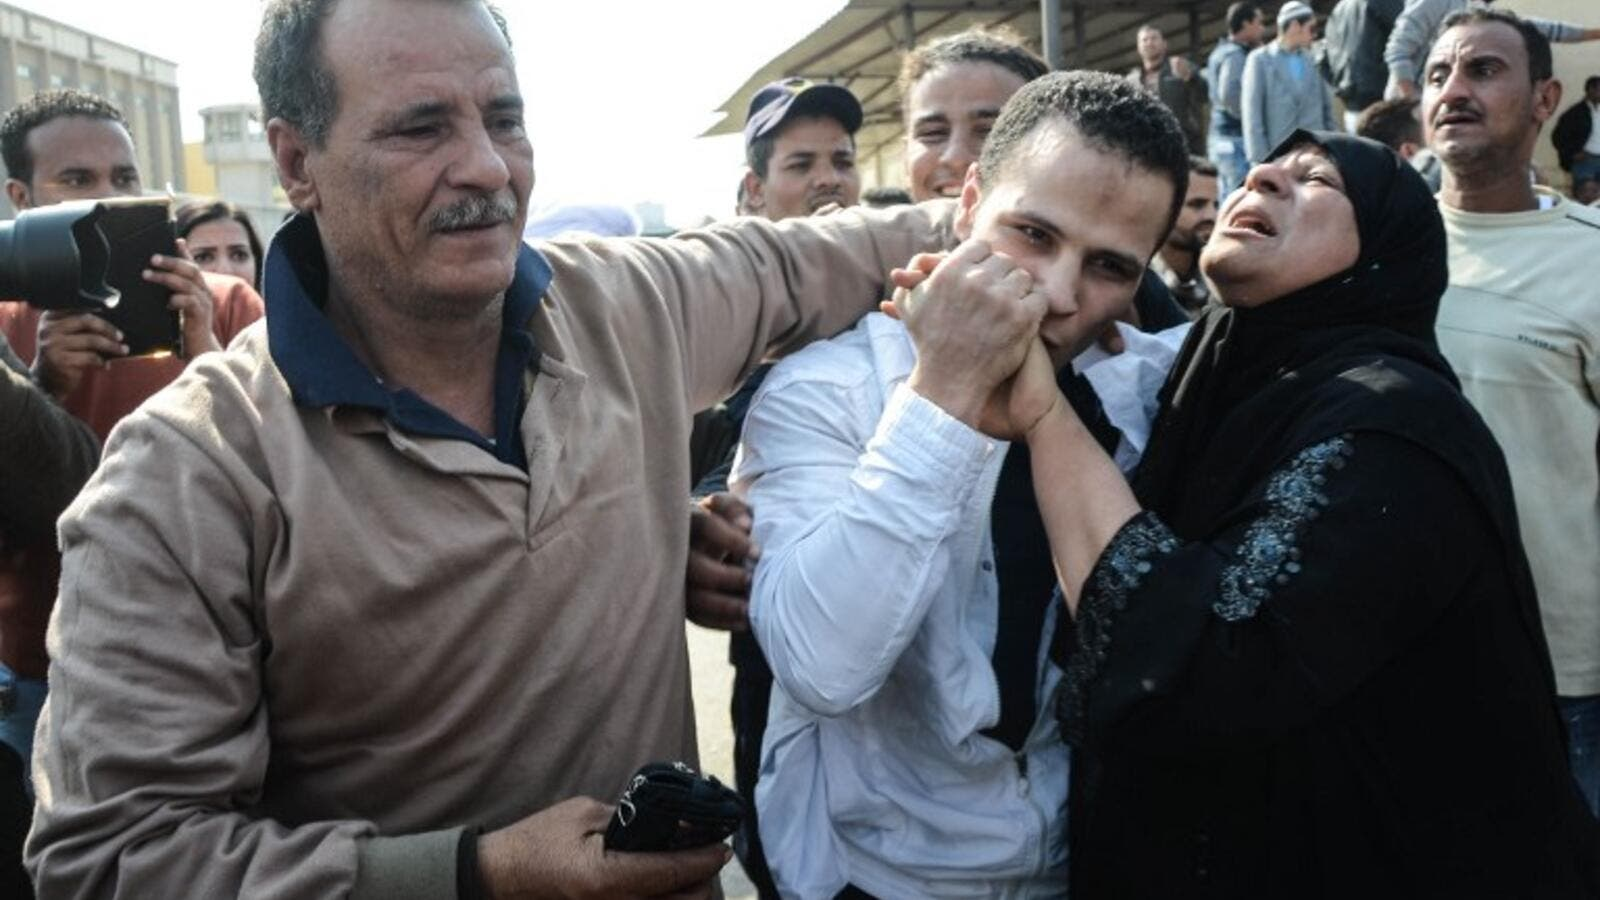 An Egyptian man embraces his parents following his release from prison in Cairo on March 14, 2017, along with 202 other prisoners who received a presidential pardon. (AFP/Aly Fahim)